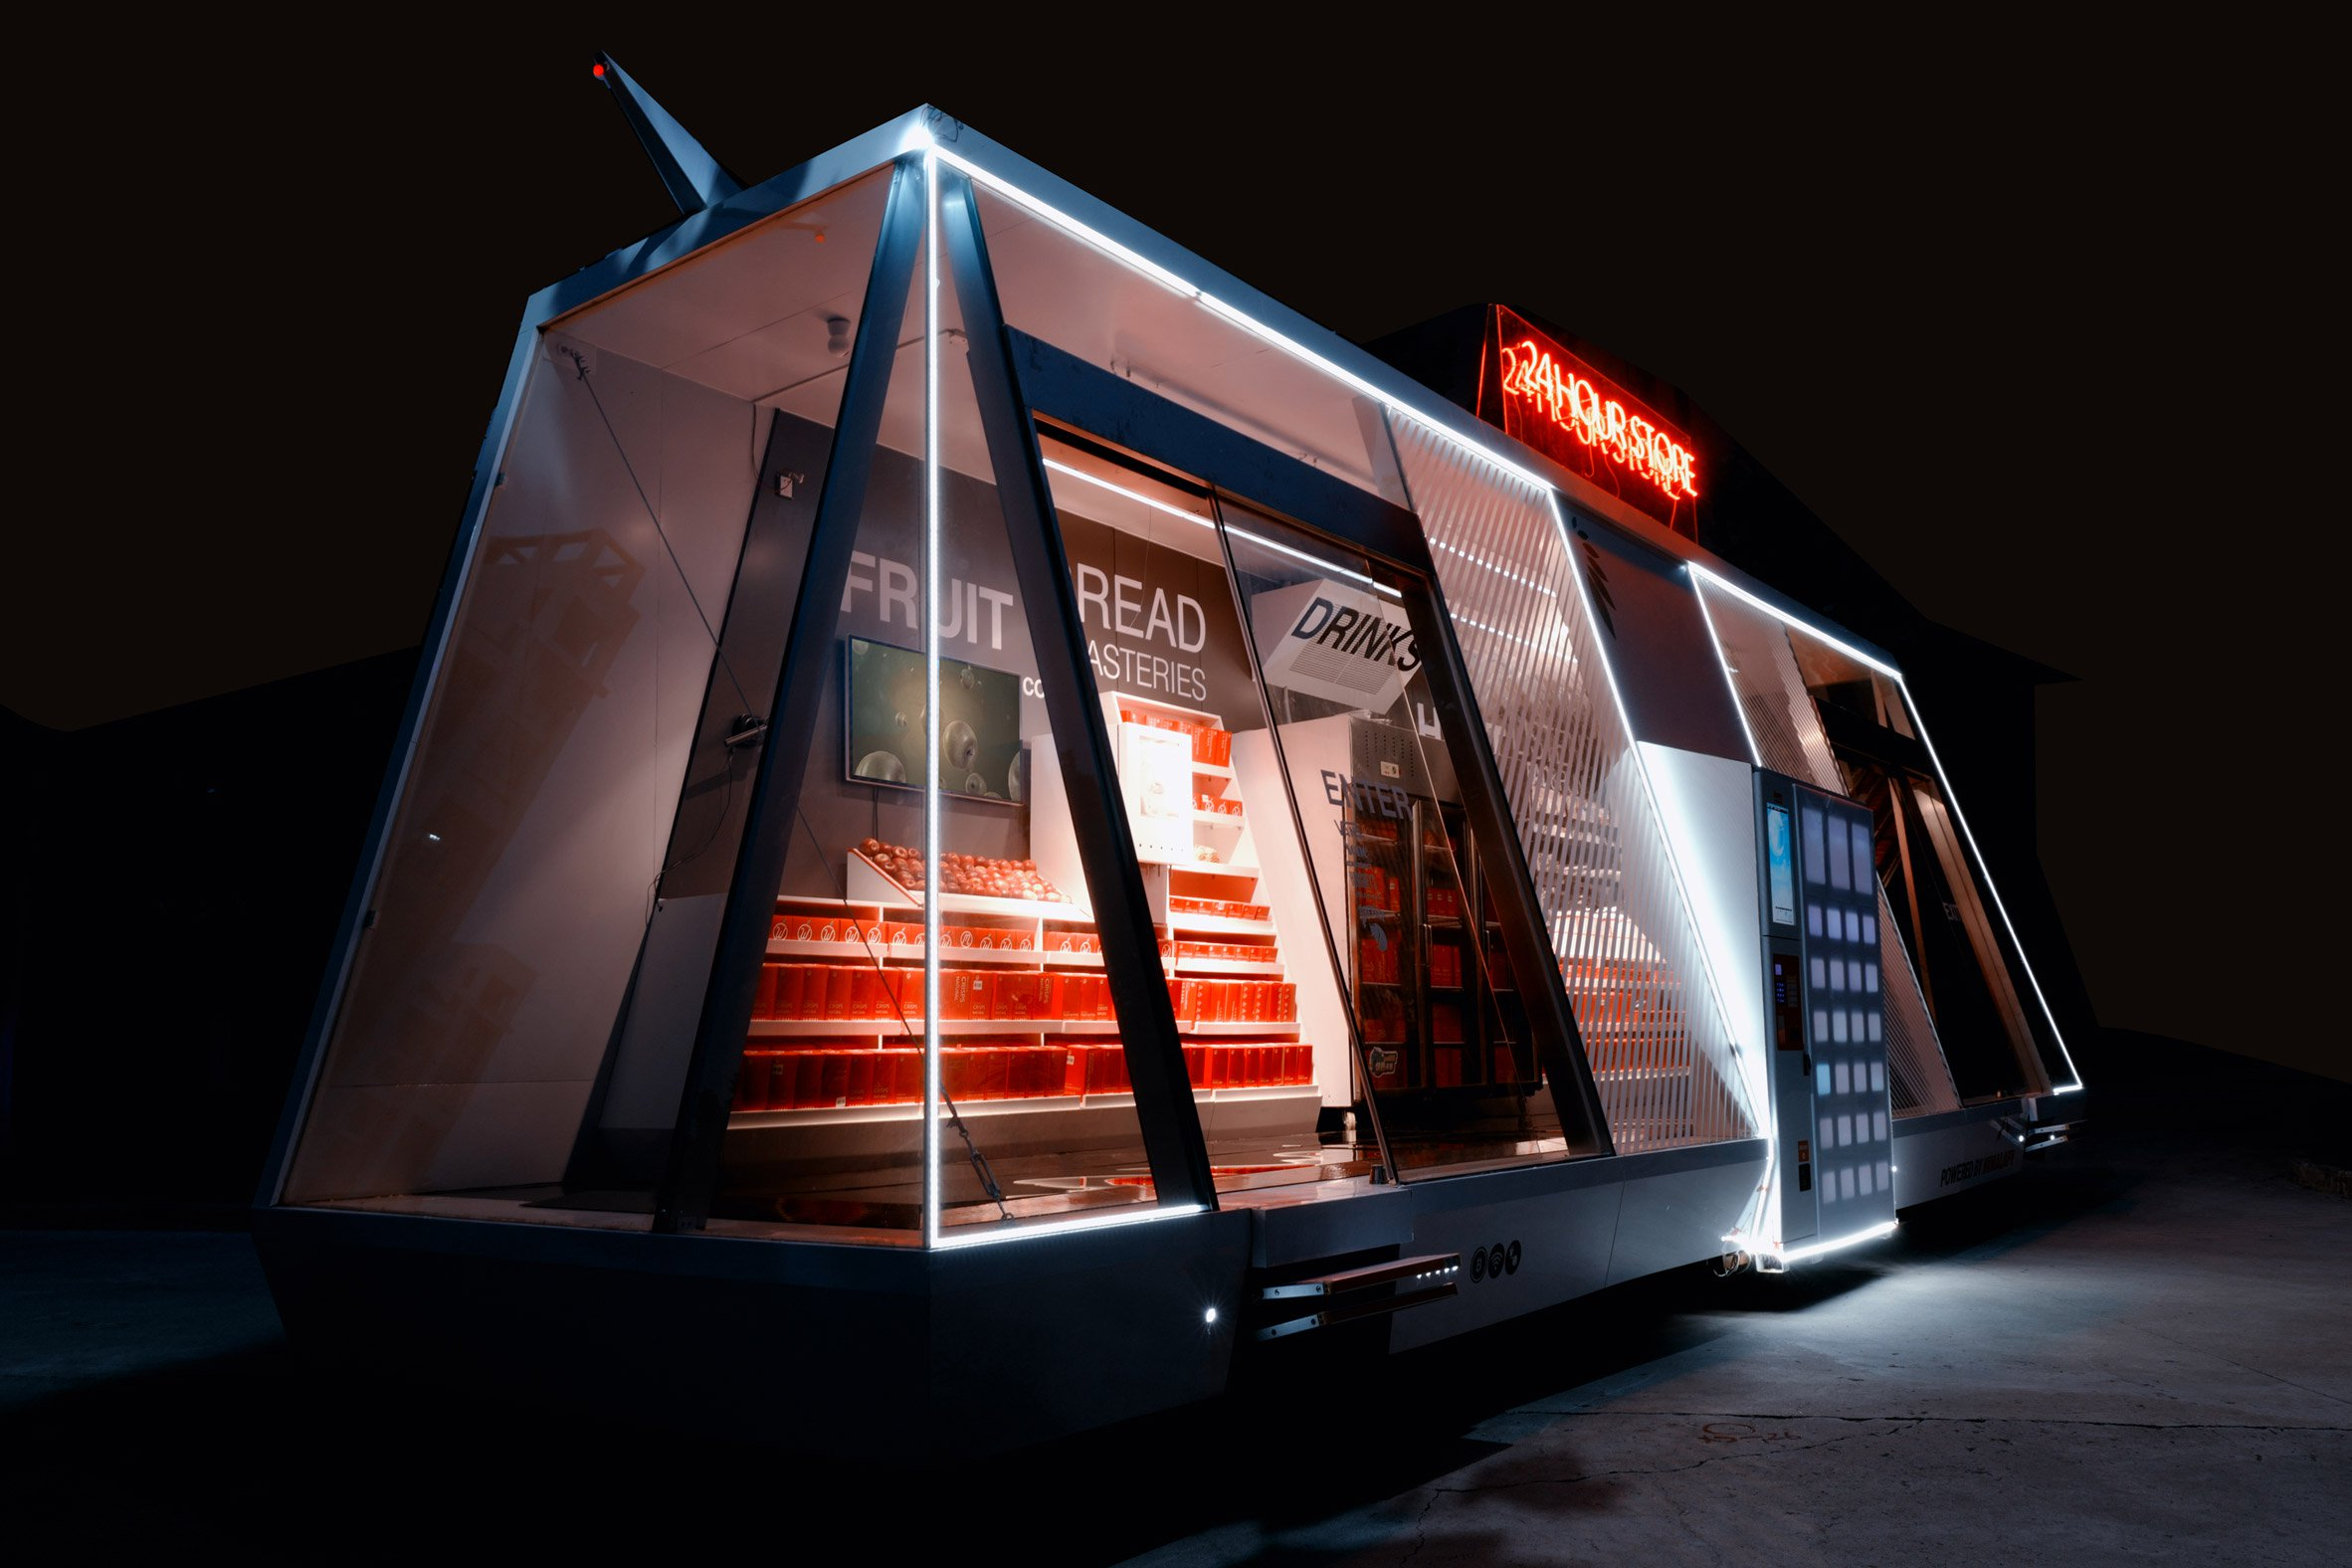 moby-mobile-grocery-store-wheelys-architecture-retail_dezeen_2364_col_8.jpg